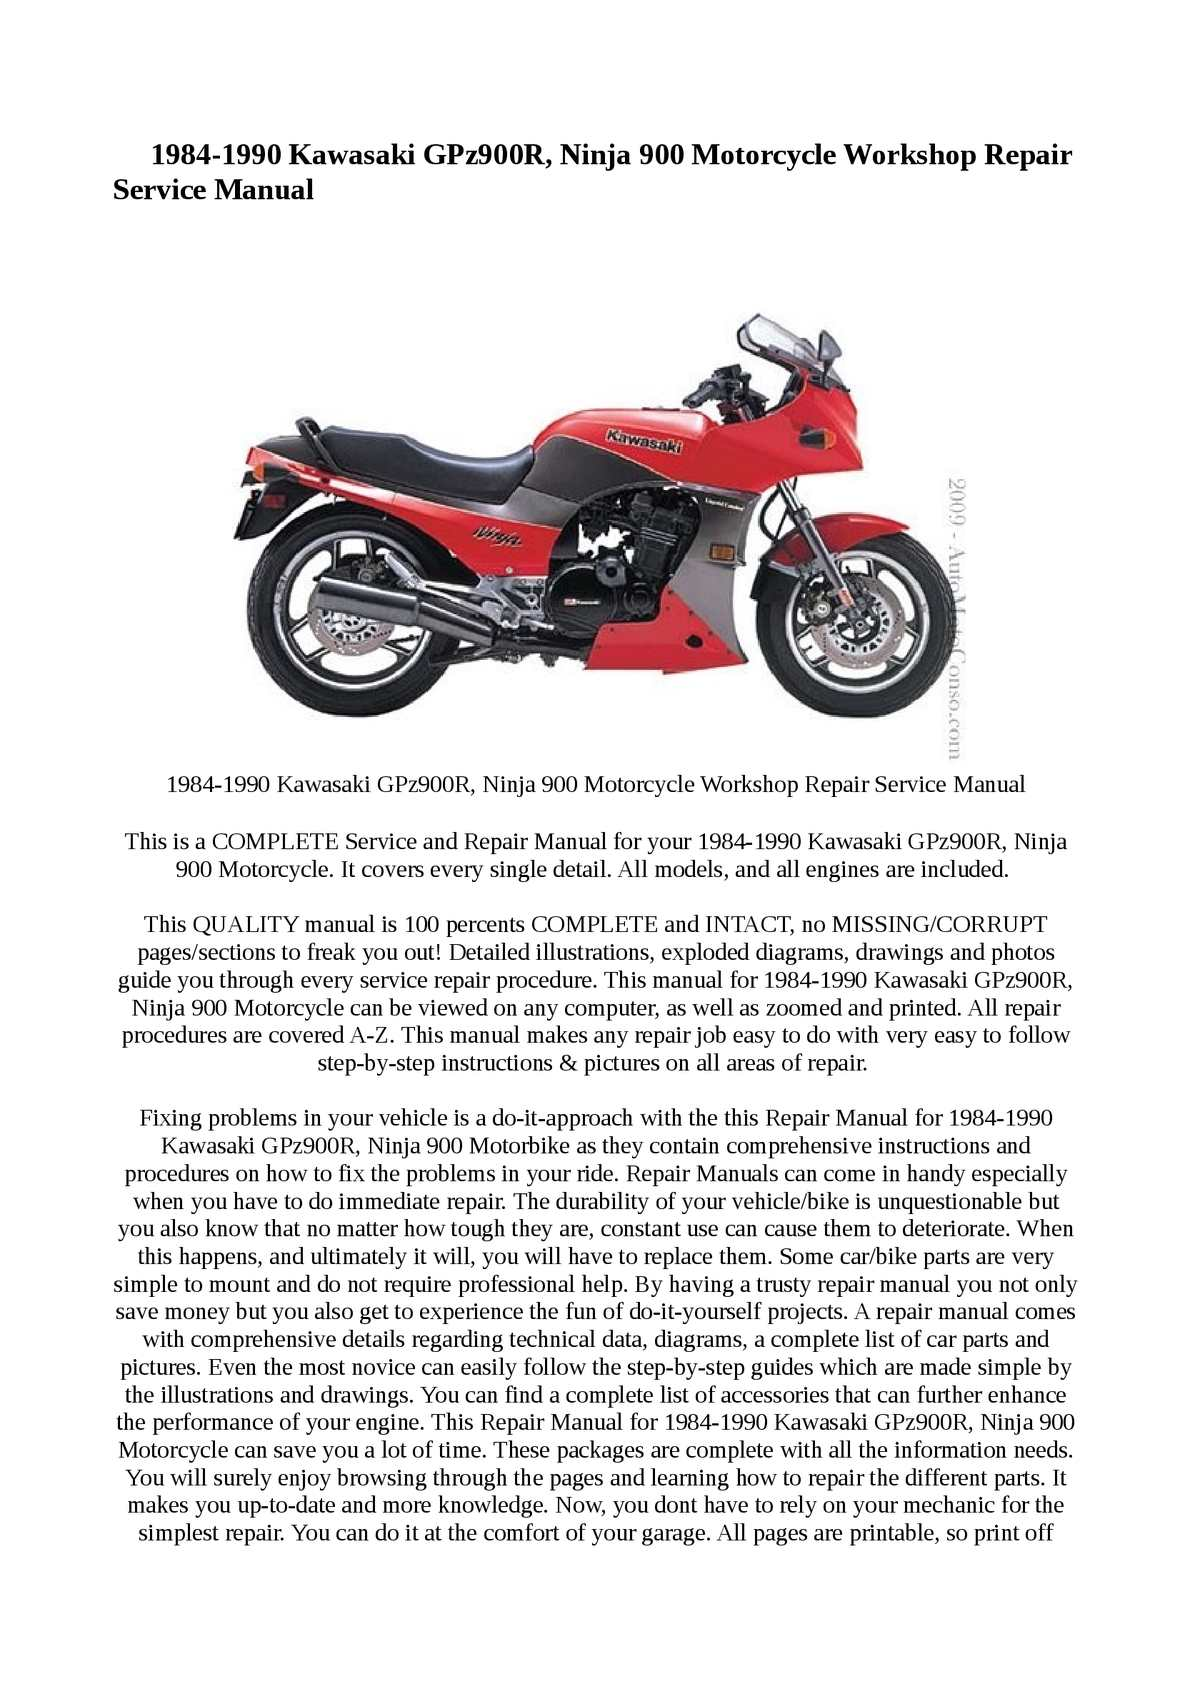 Calaméo - 1984-1990 Kawasaki GPz900R, Ninja 900 Motorcycle Workshop Repair  Service Manual